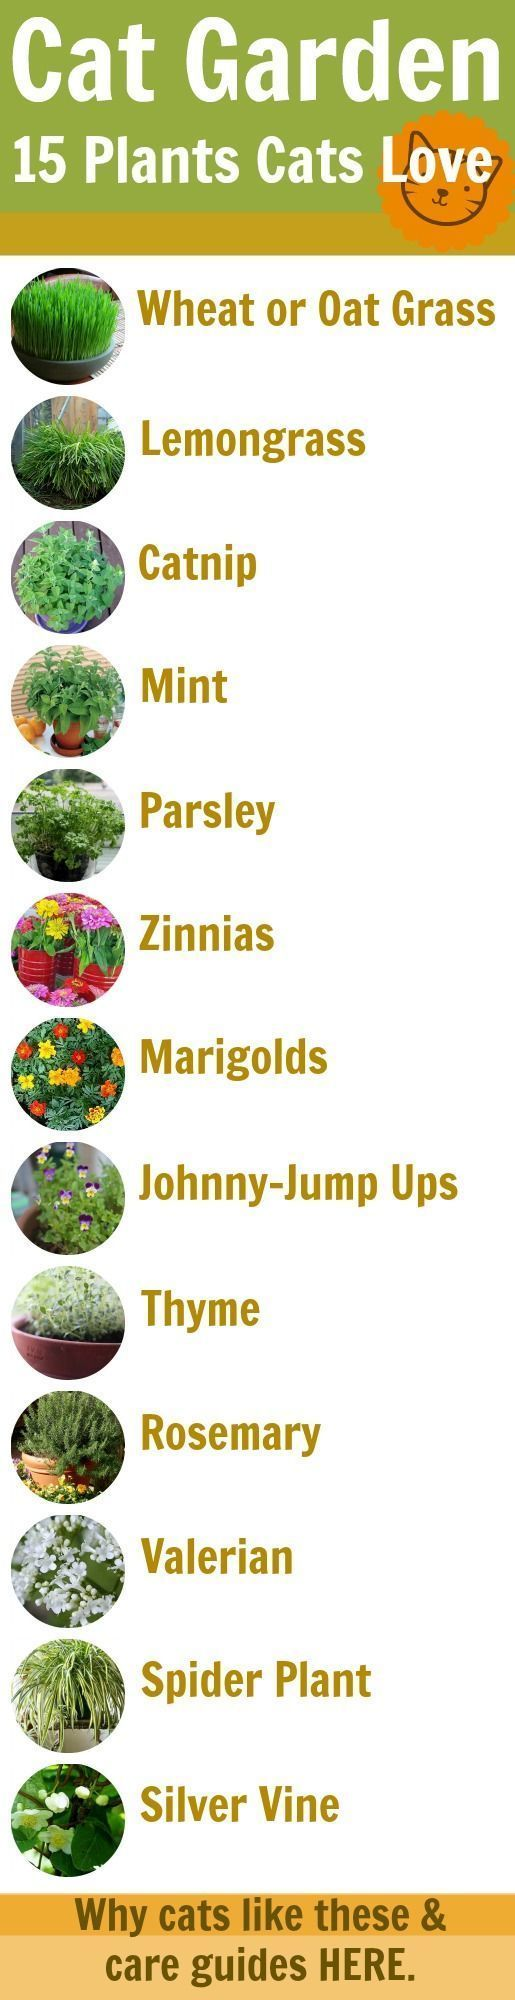 Cat Garden Guide: 15 Feline-Safe Plants Cats Love - Why they like them and grow guides for each.